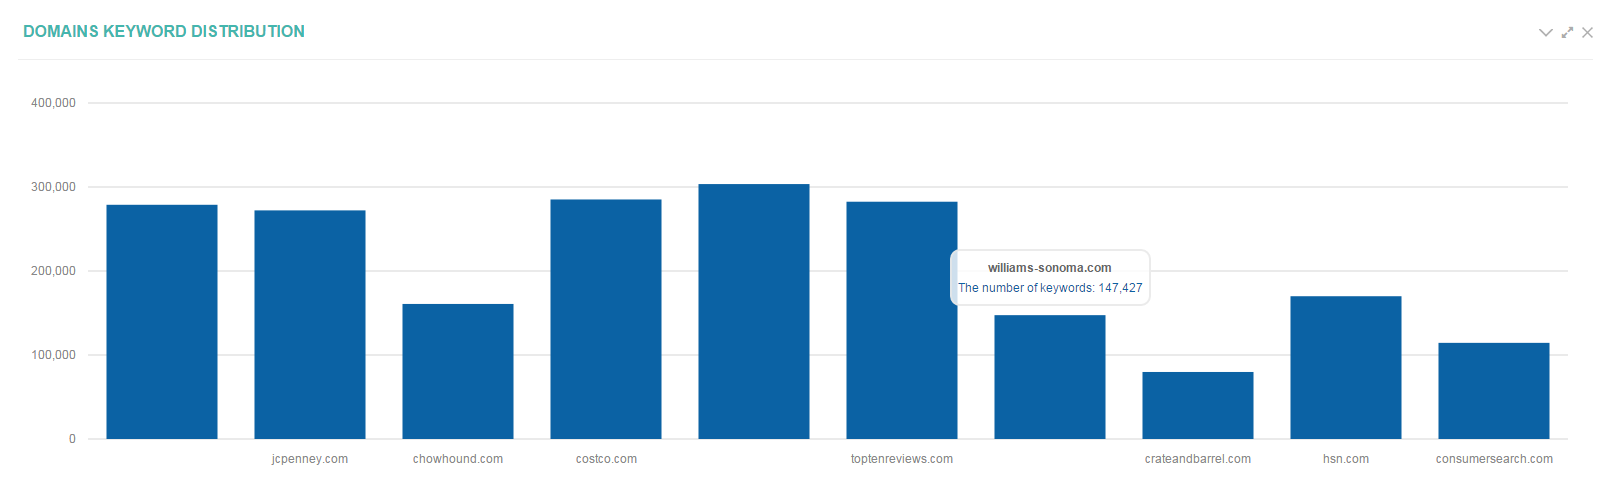 21_Competitors_competitors_in_search_domains_keyword_distribution.png